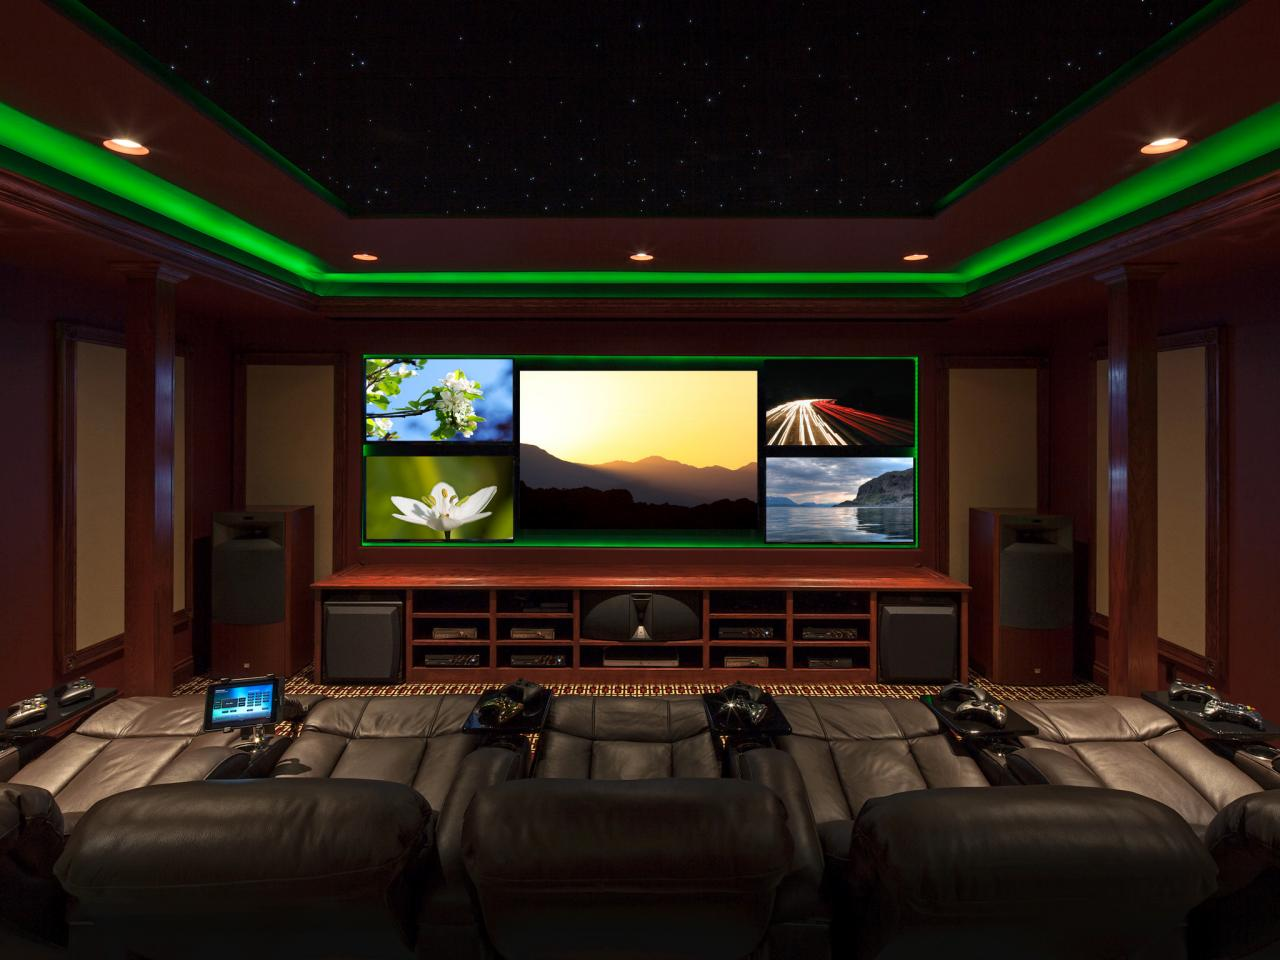 gaming bedroom design www galleryhip com the hippest pics my gaming bedroom setup share yours too